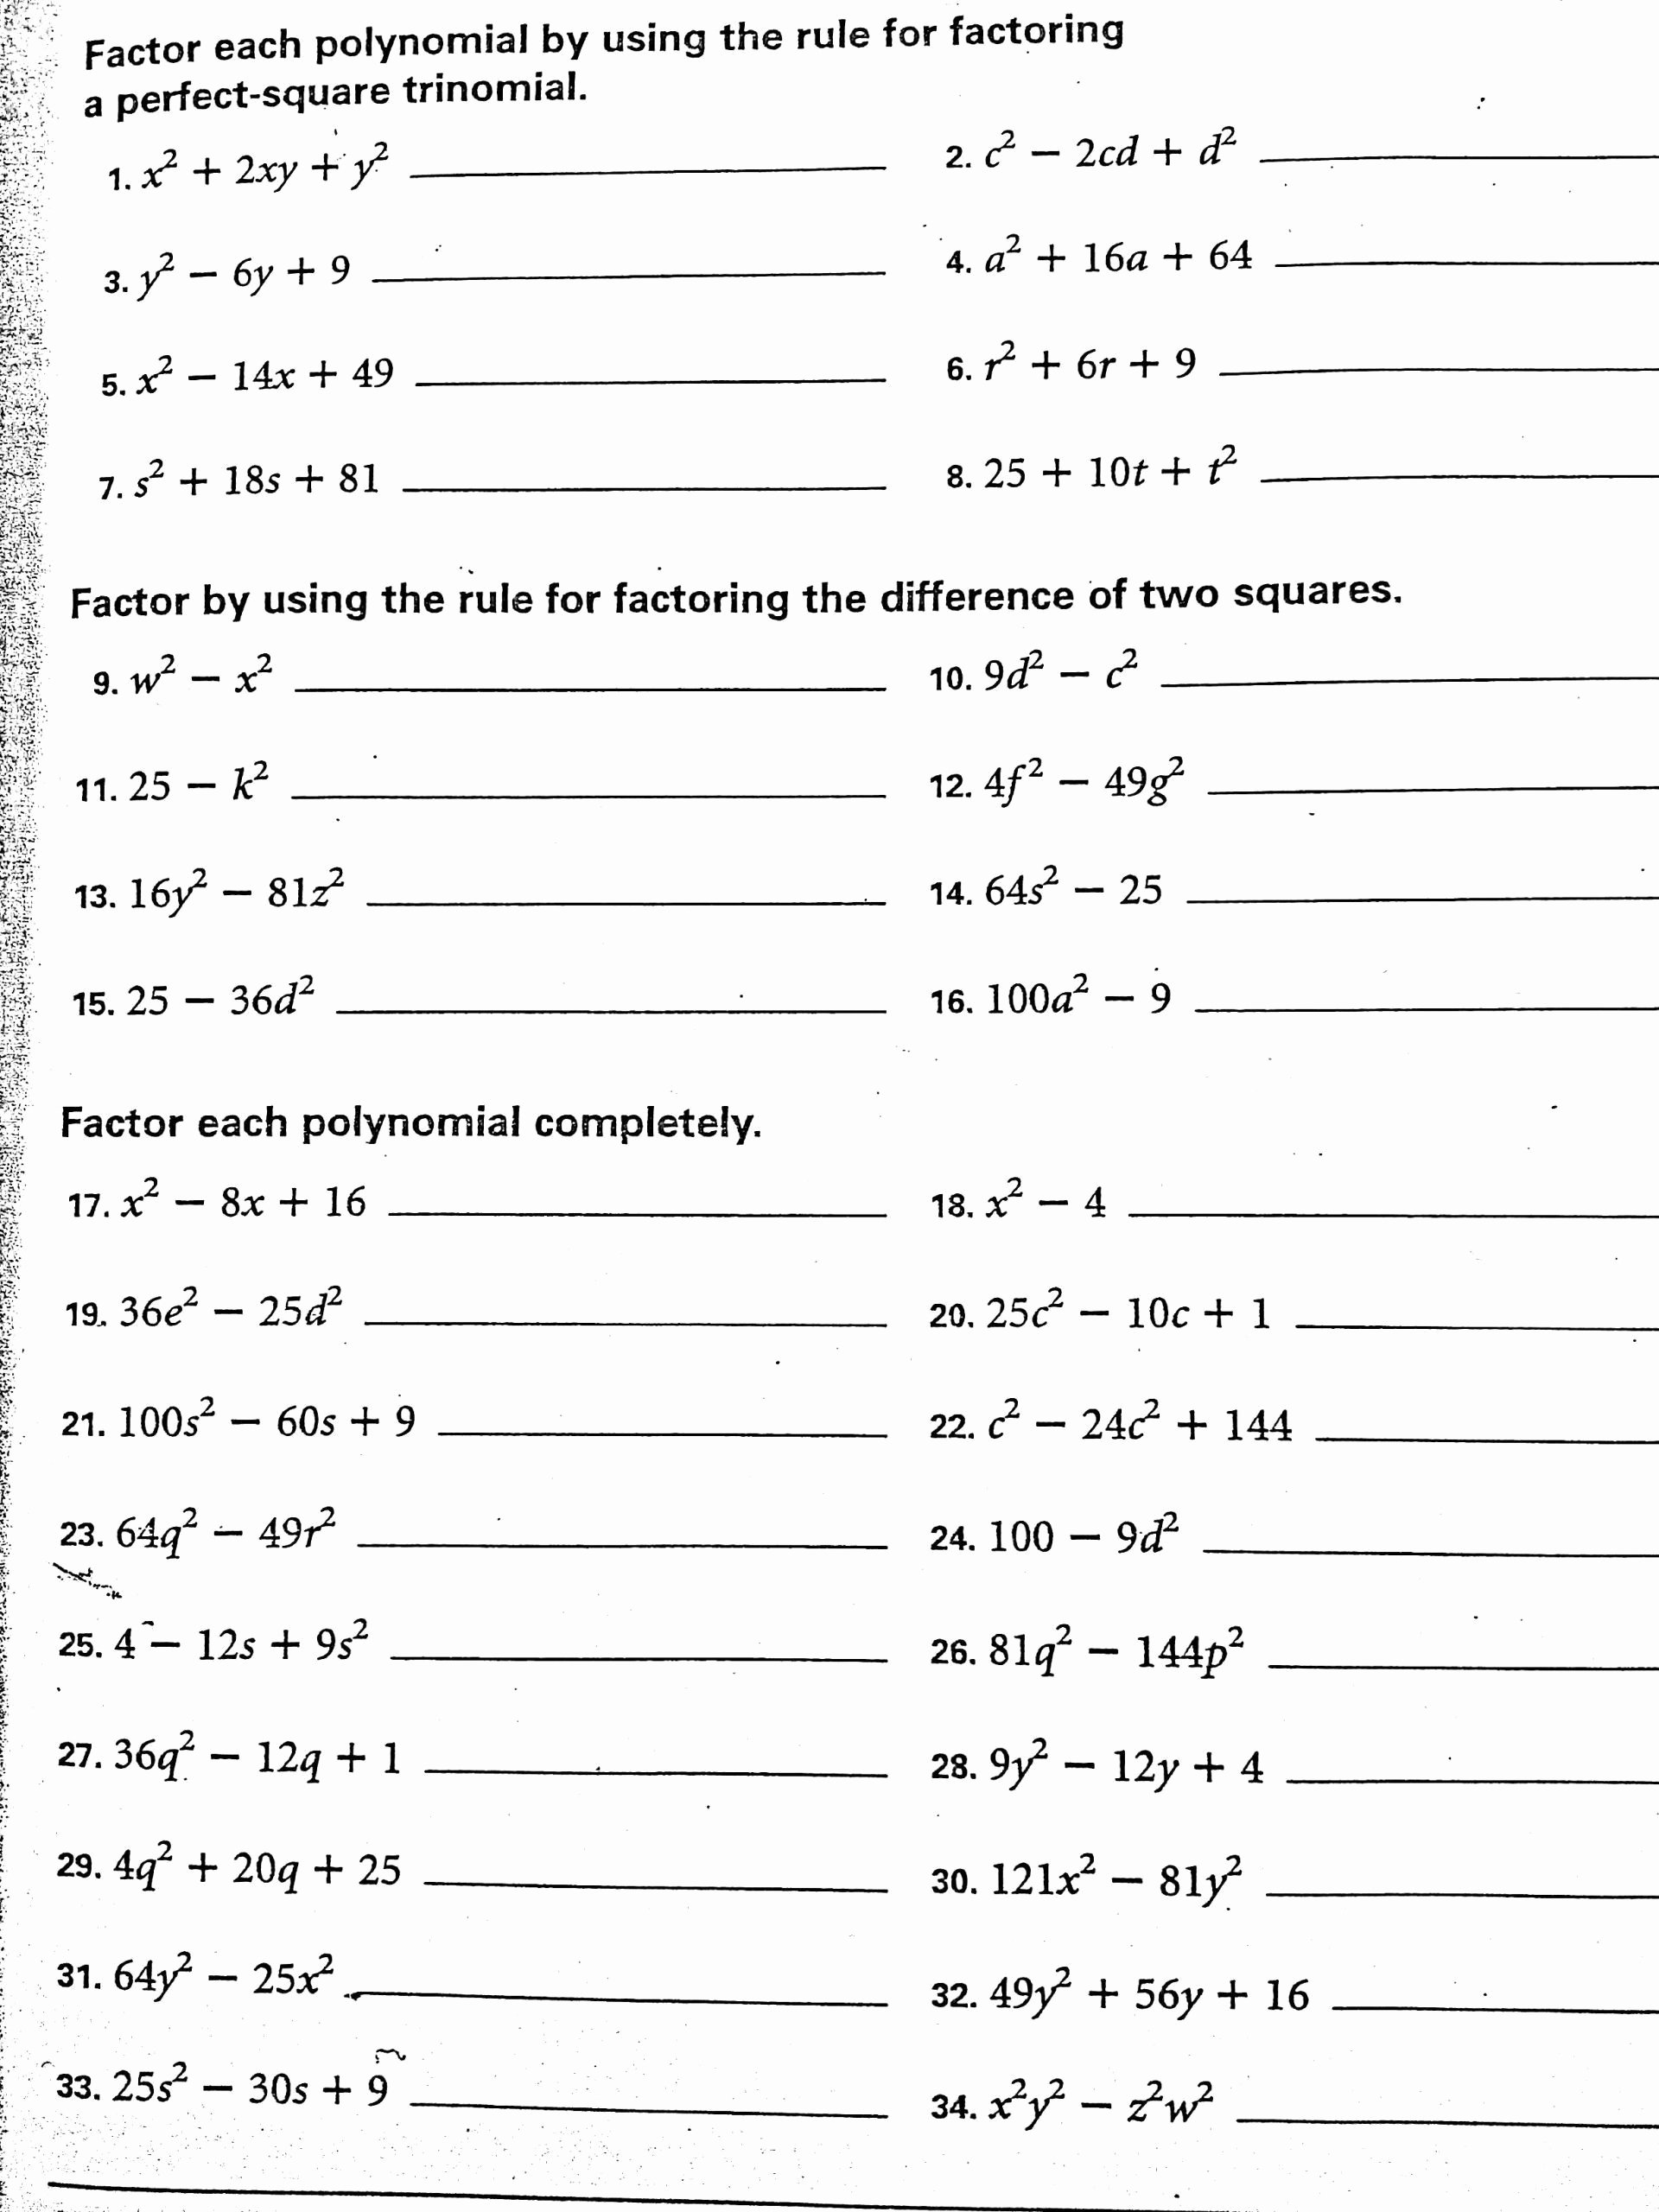 Factoring Difference Of Squares Worksheet Fresh Algebra 1 Factoring Worksheet Difference Two Squares